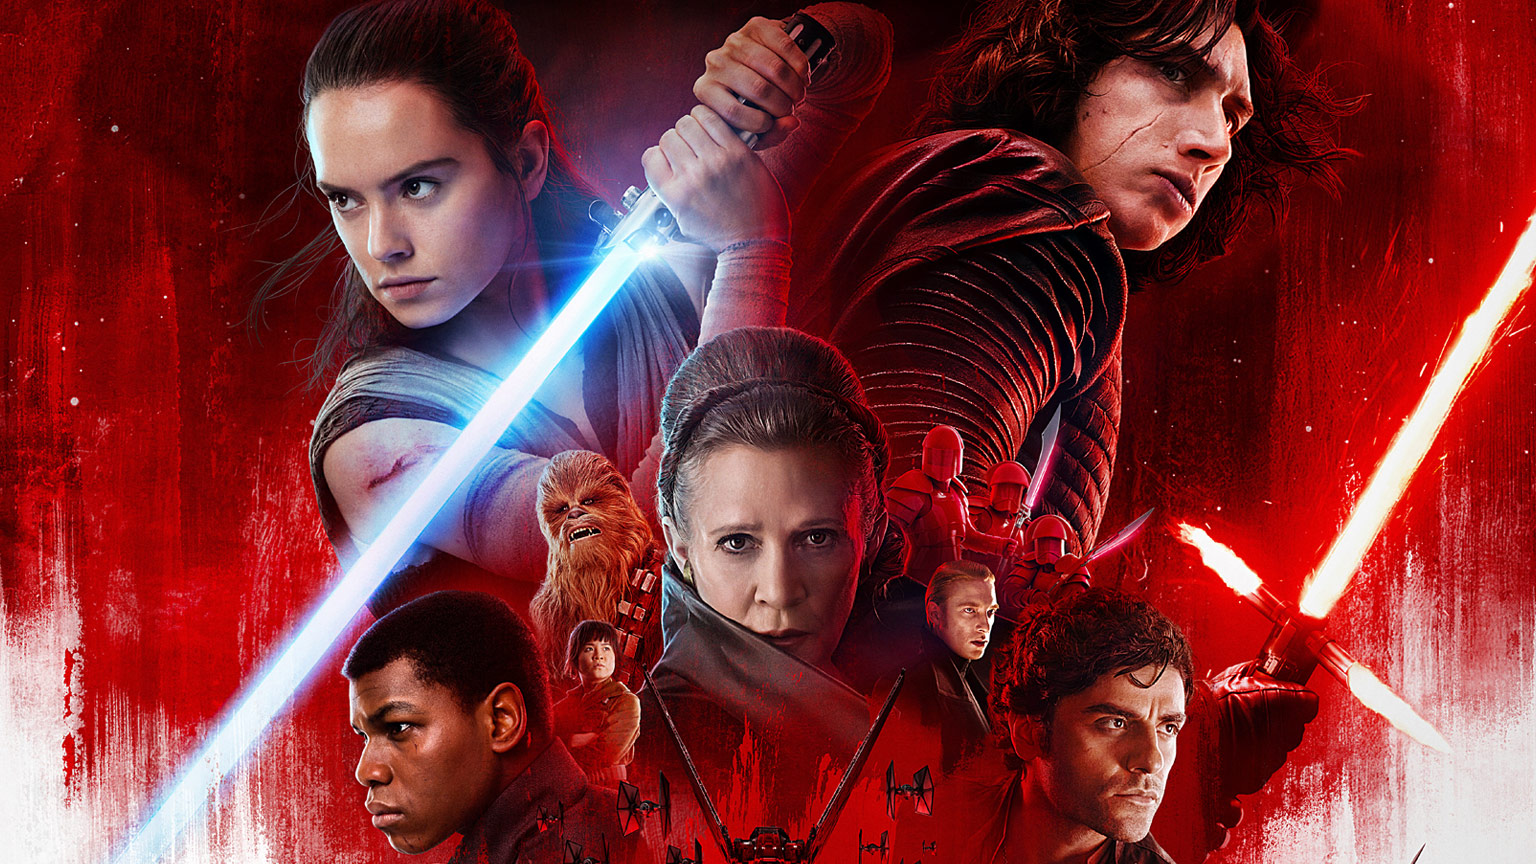 the-last-jedi-theatrical-poster-tall-a